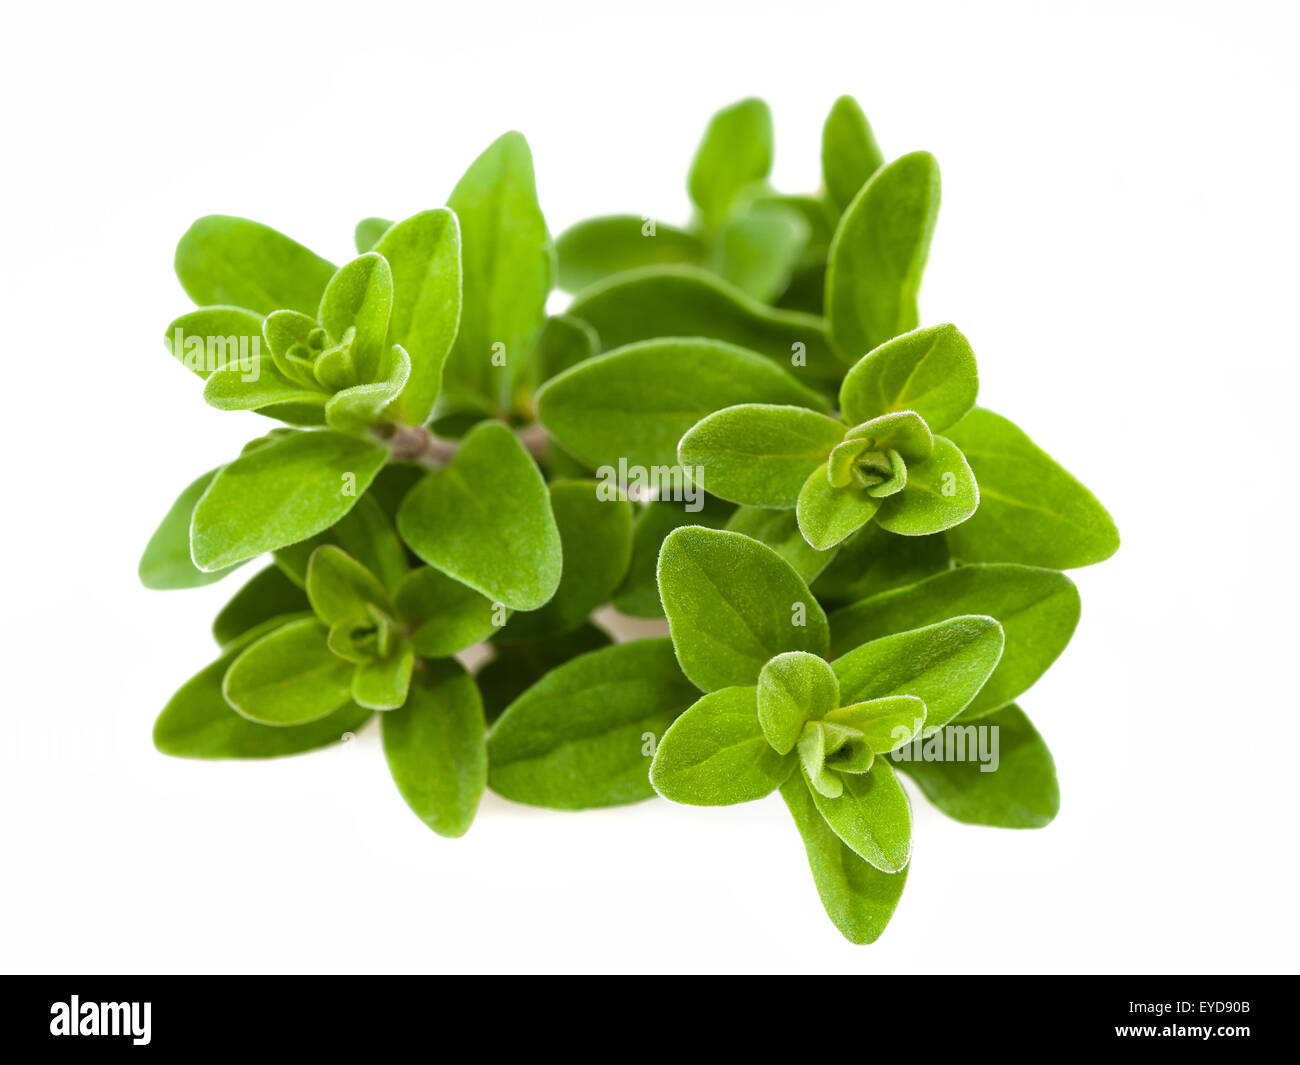 Bunch of marjoram isolated on white - Stock Image